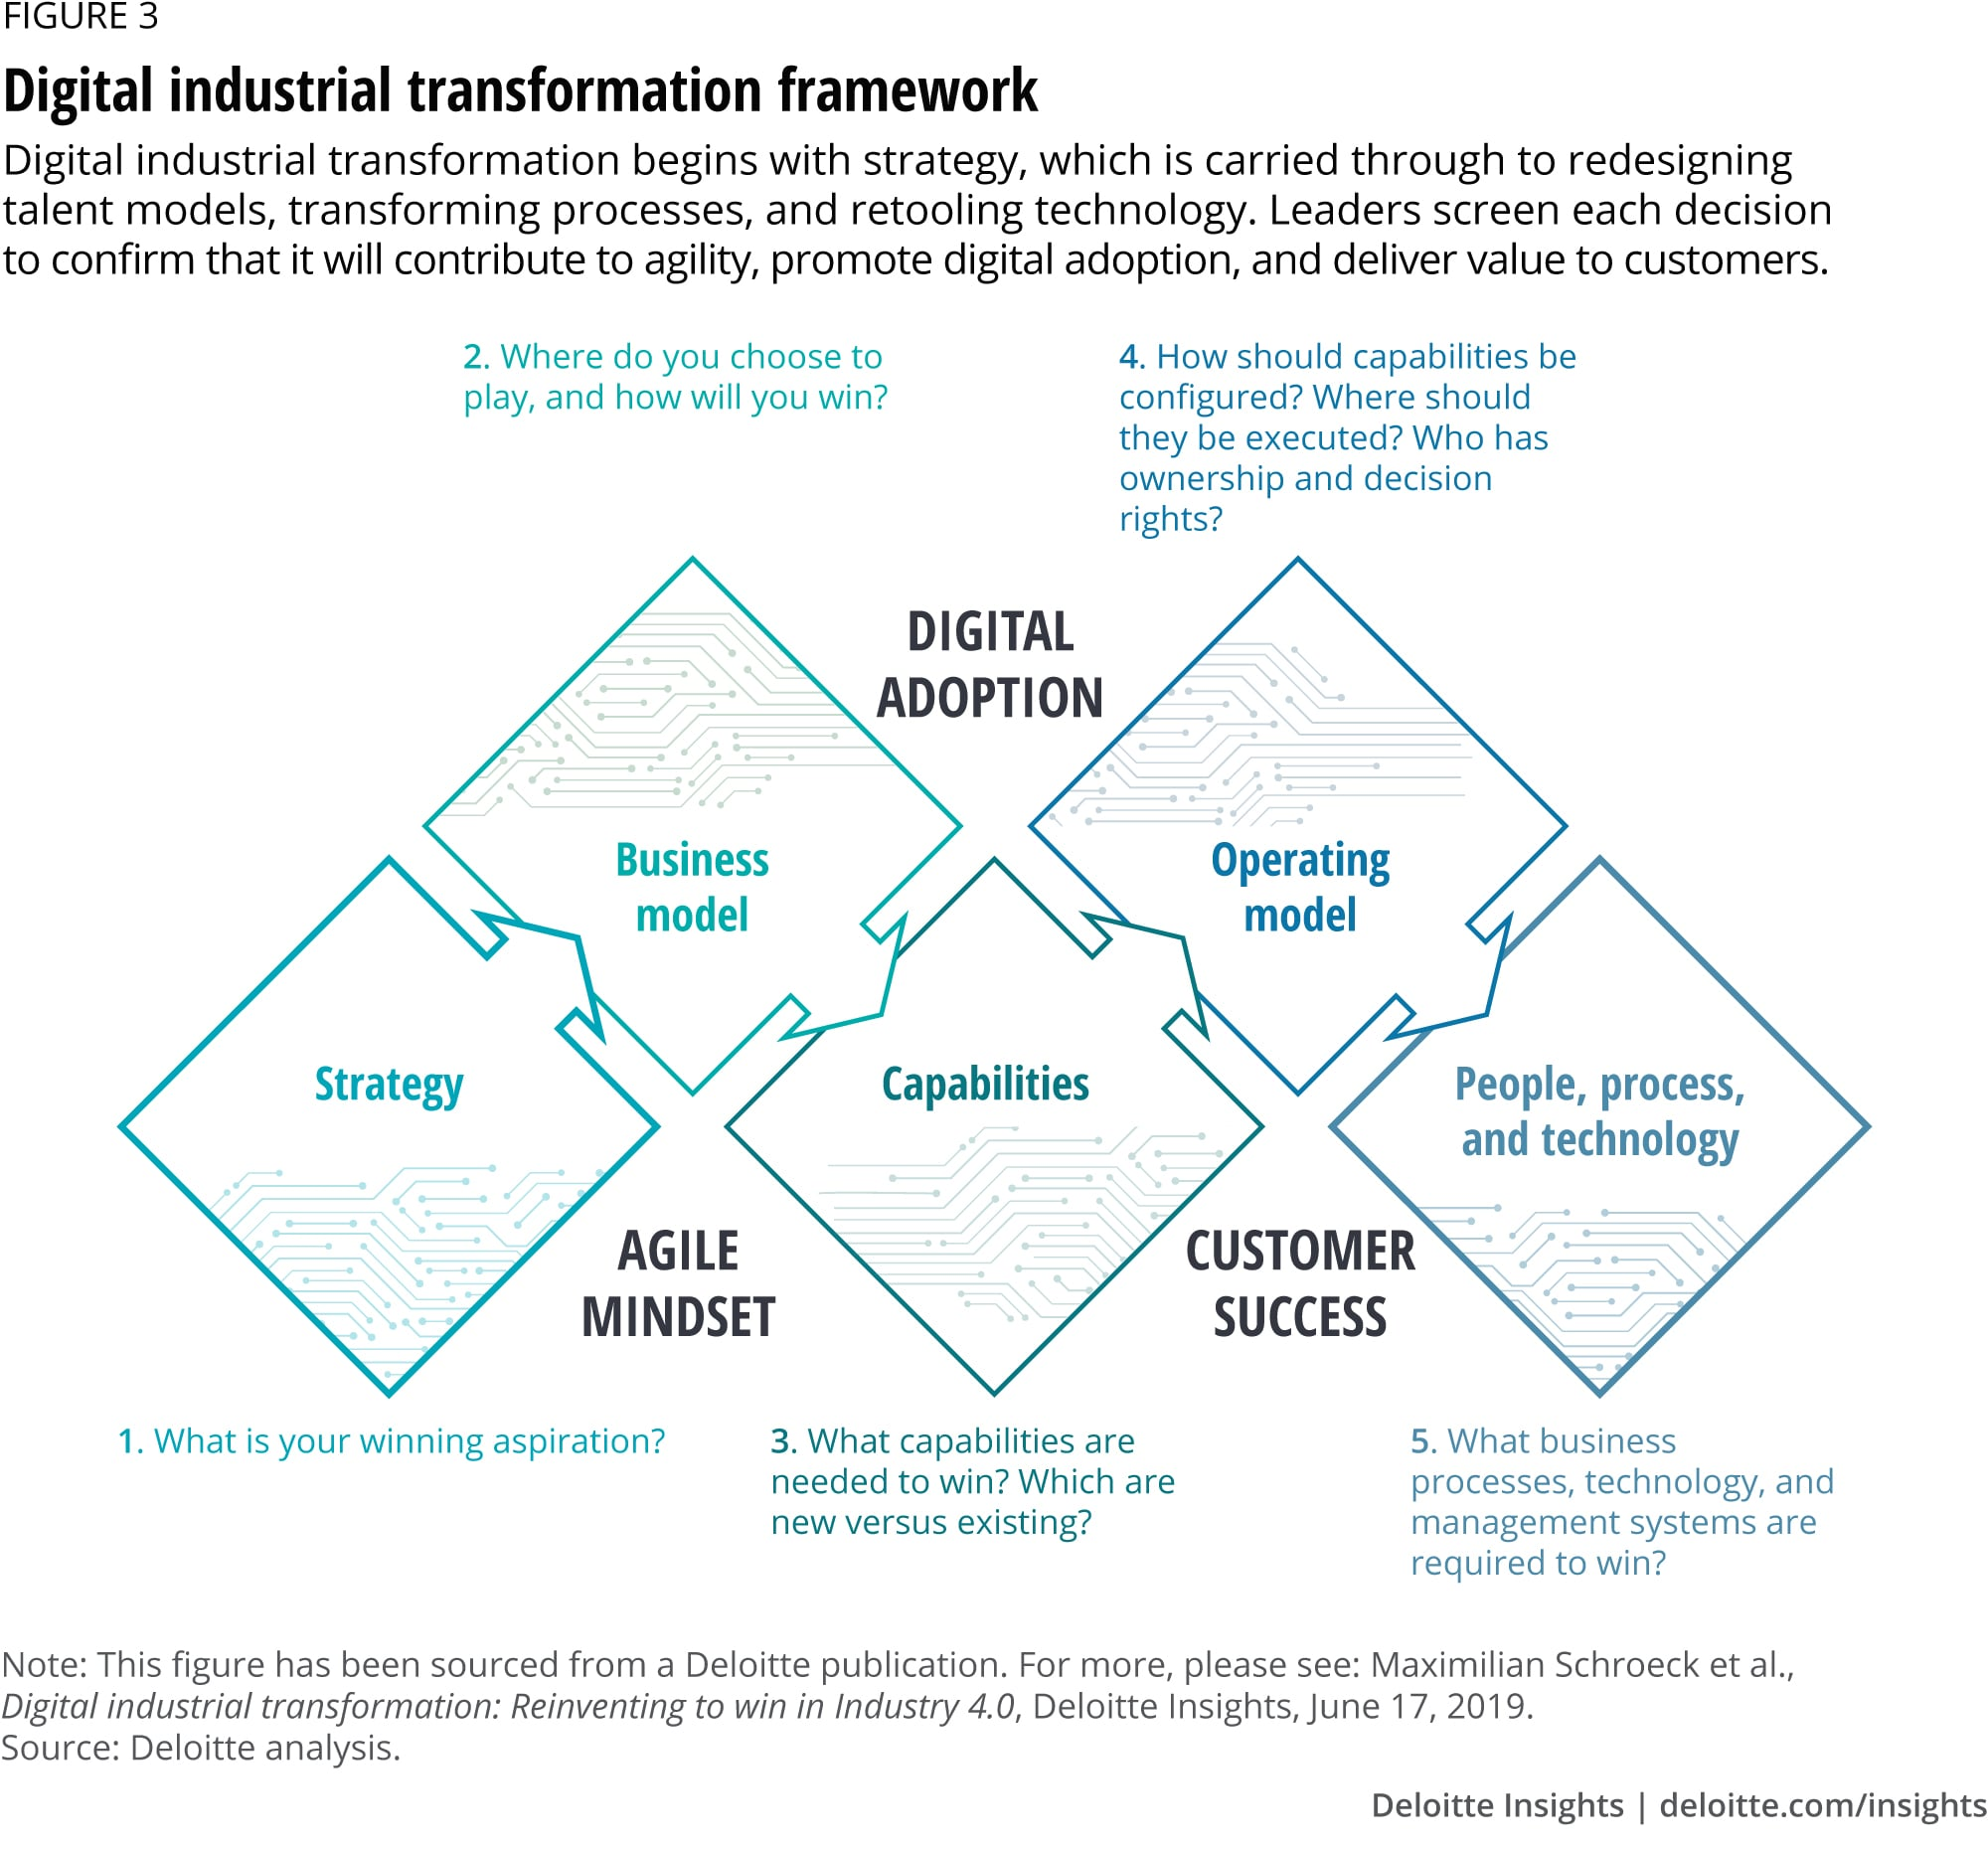 Figure 3. Digital industrial transformation framework